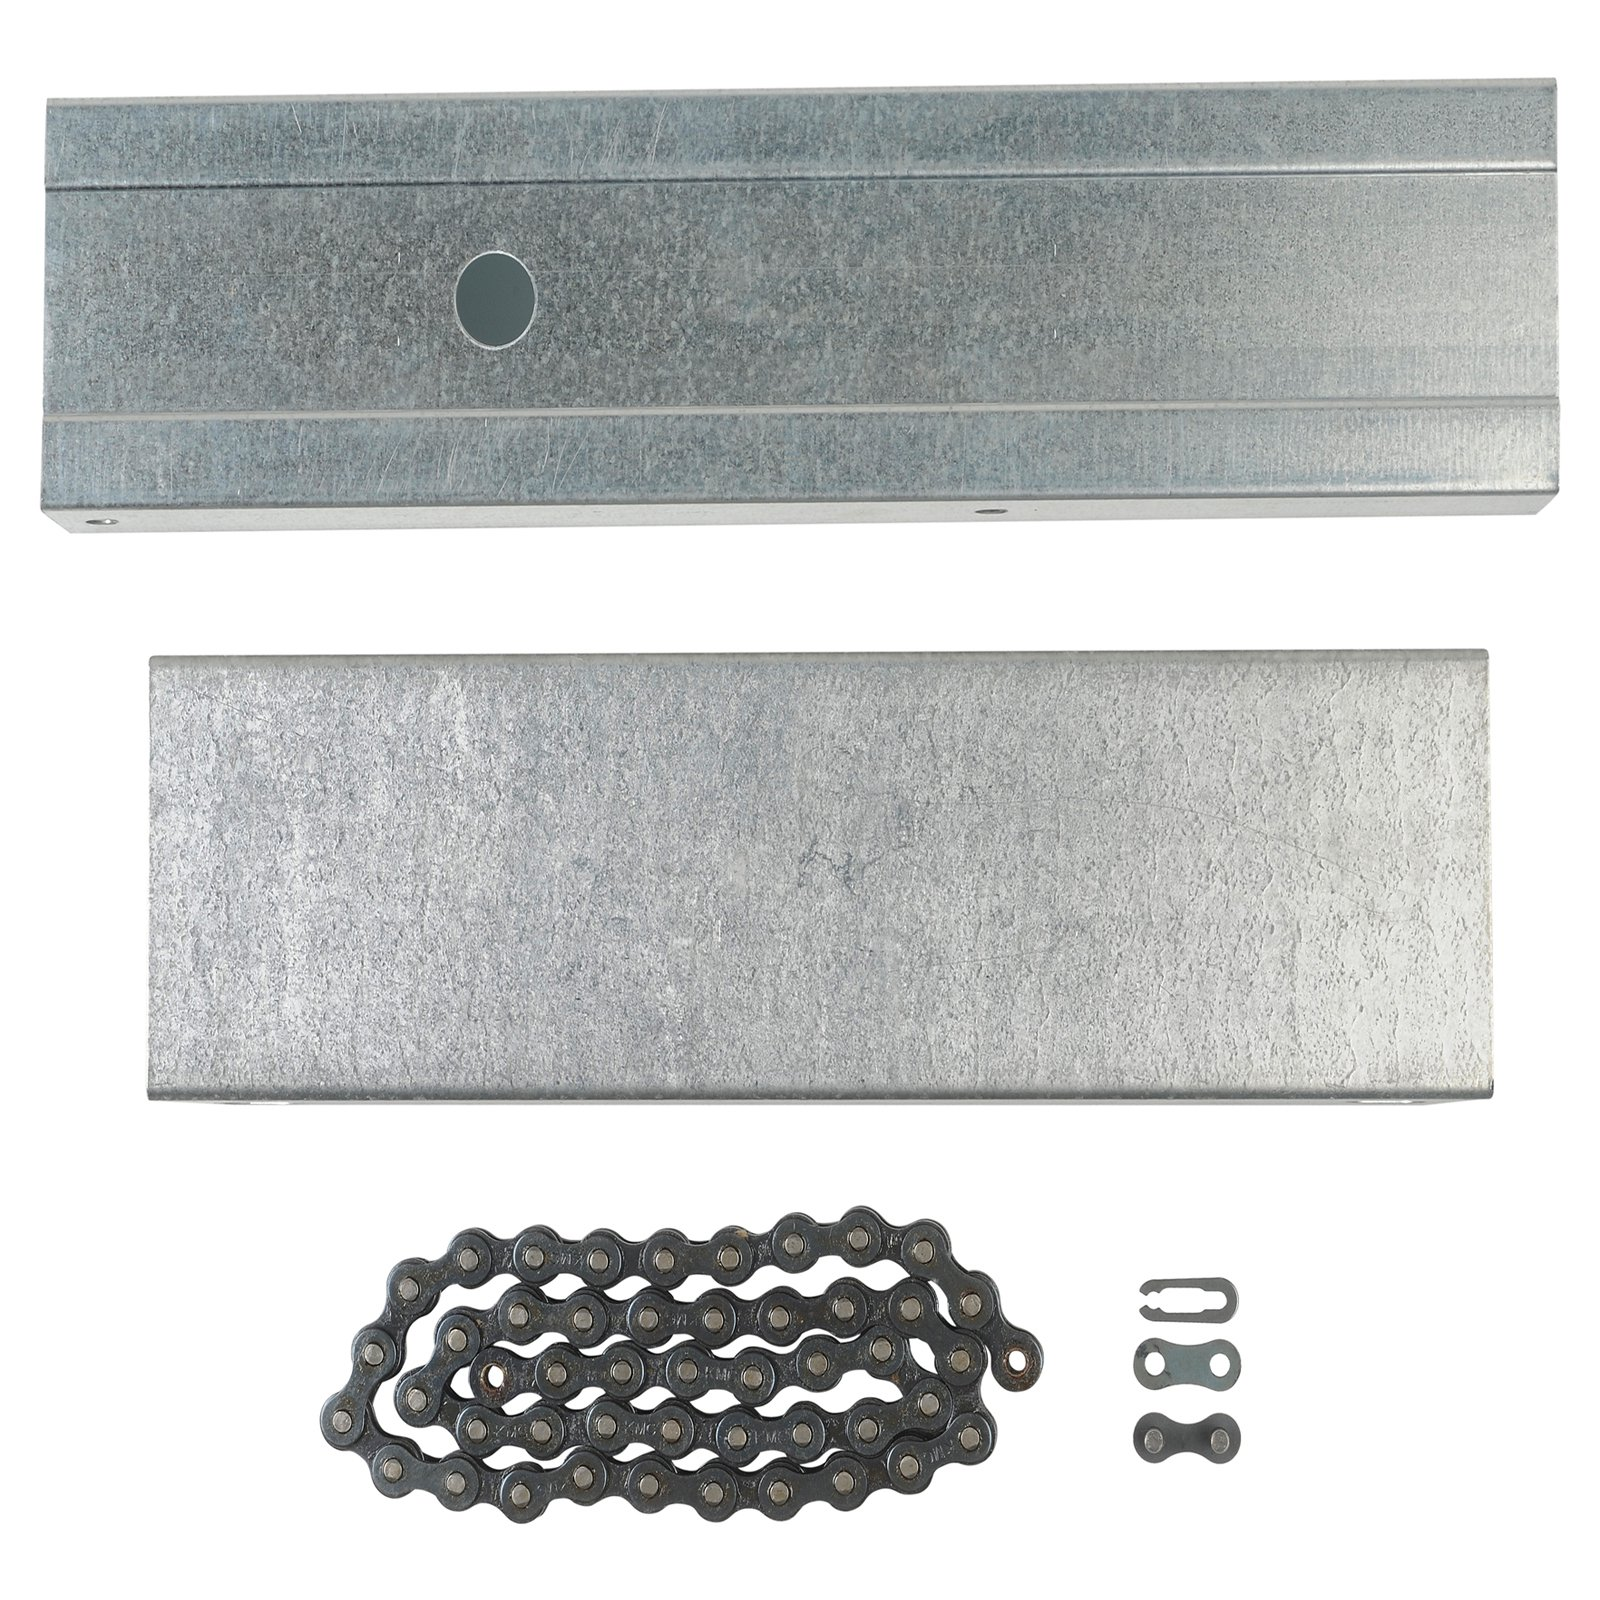 Genie 37301r C-Channel Chain Extension Kit